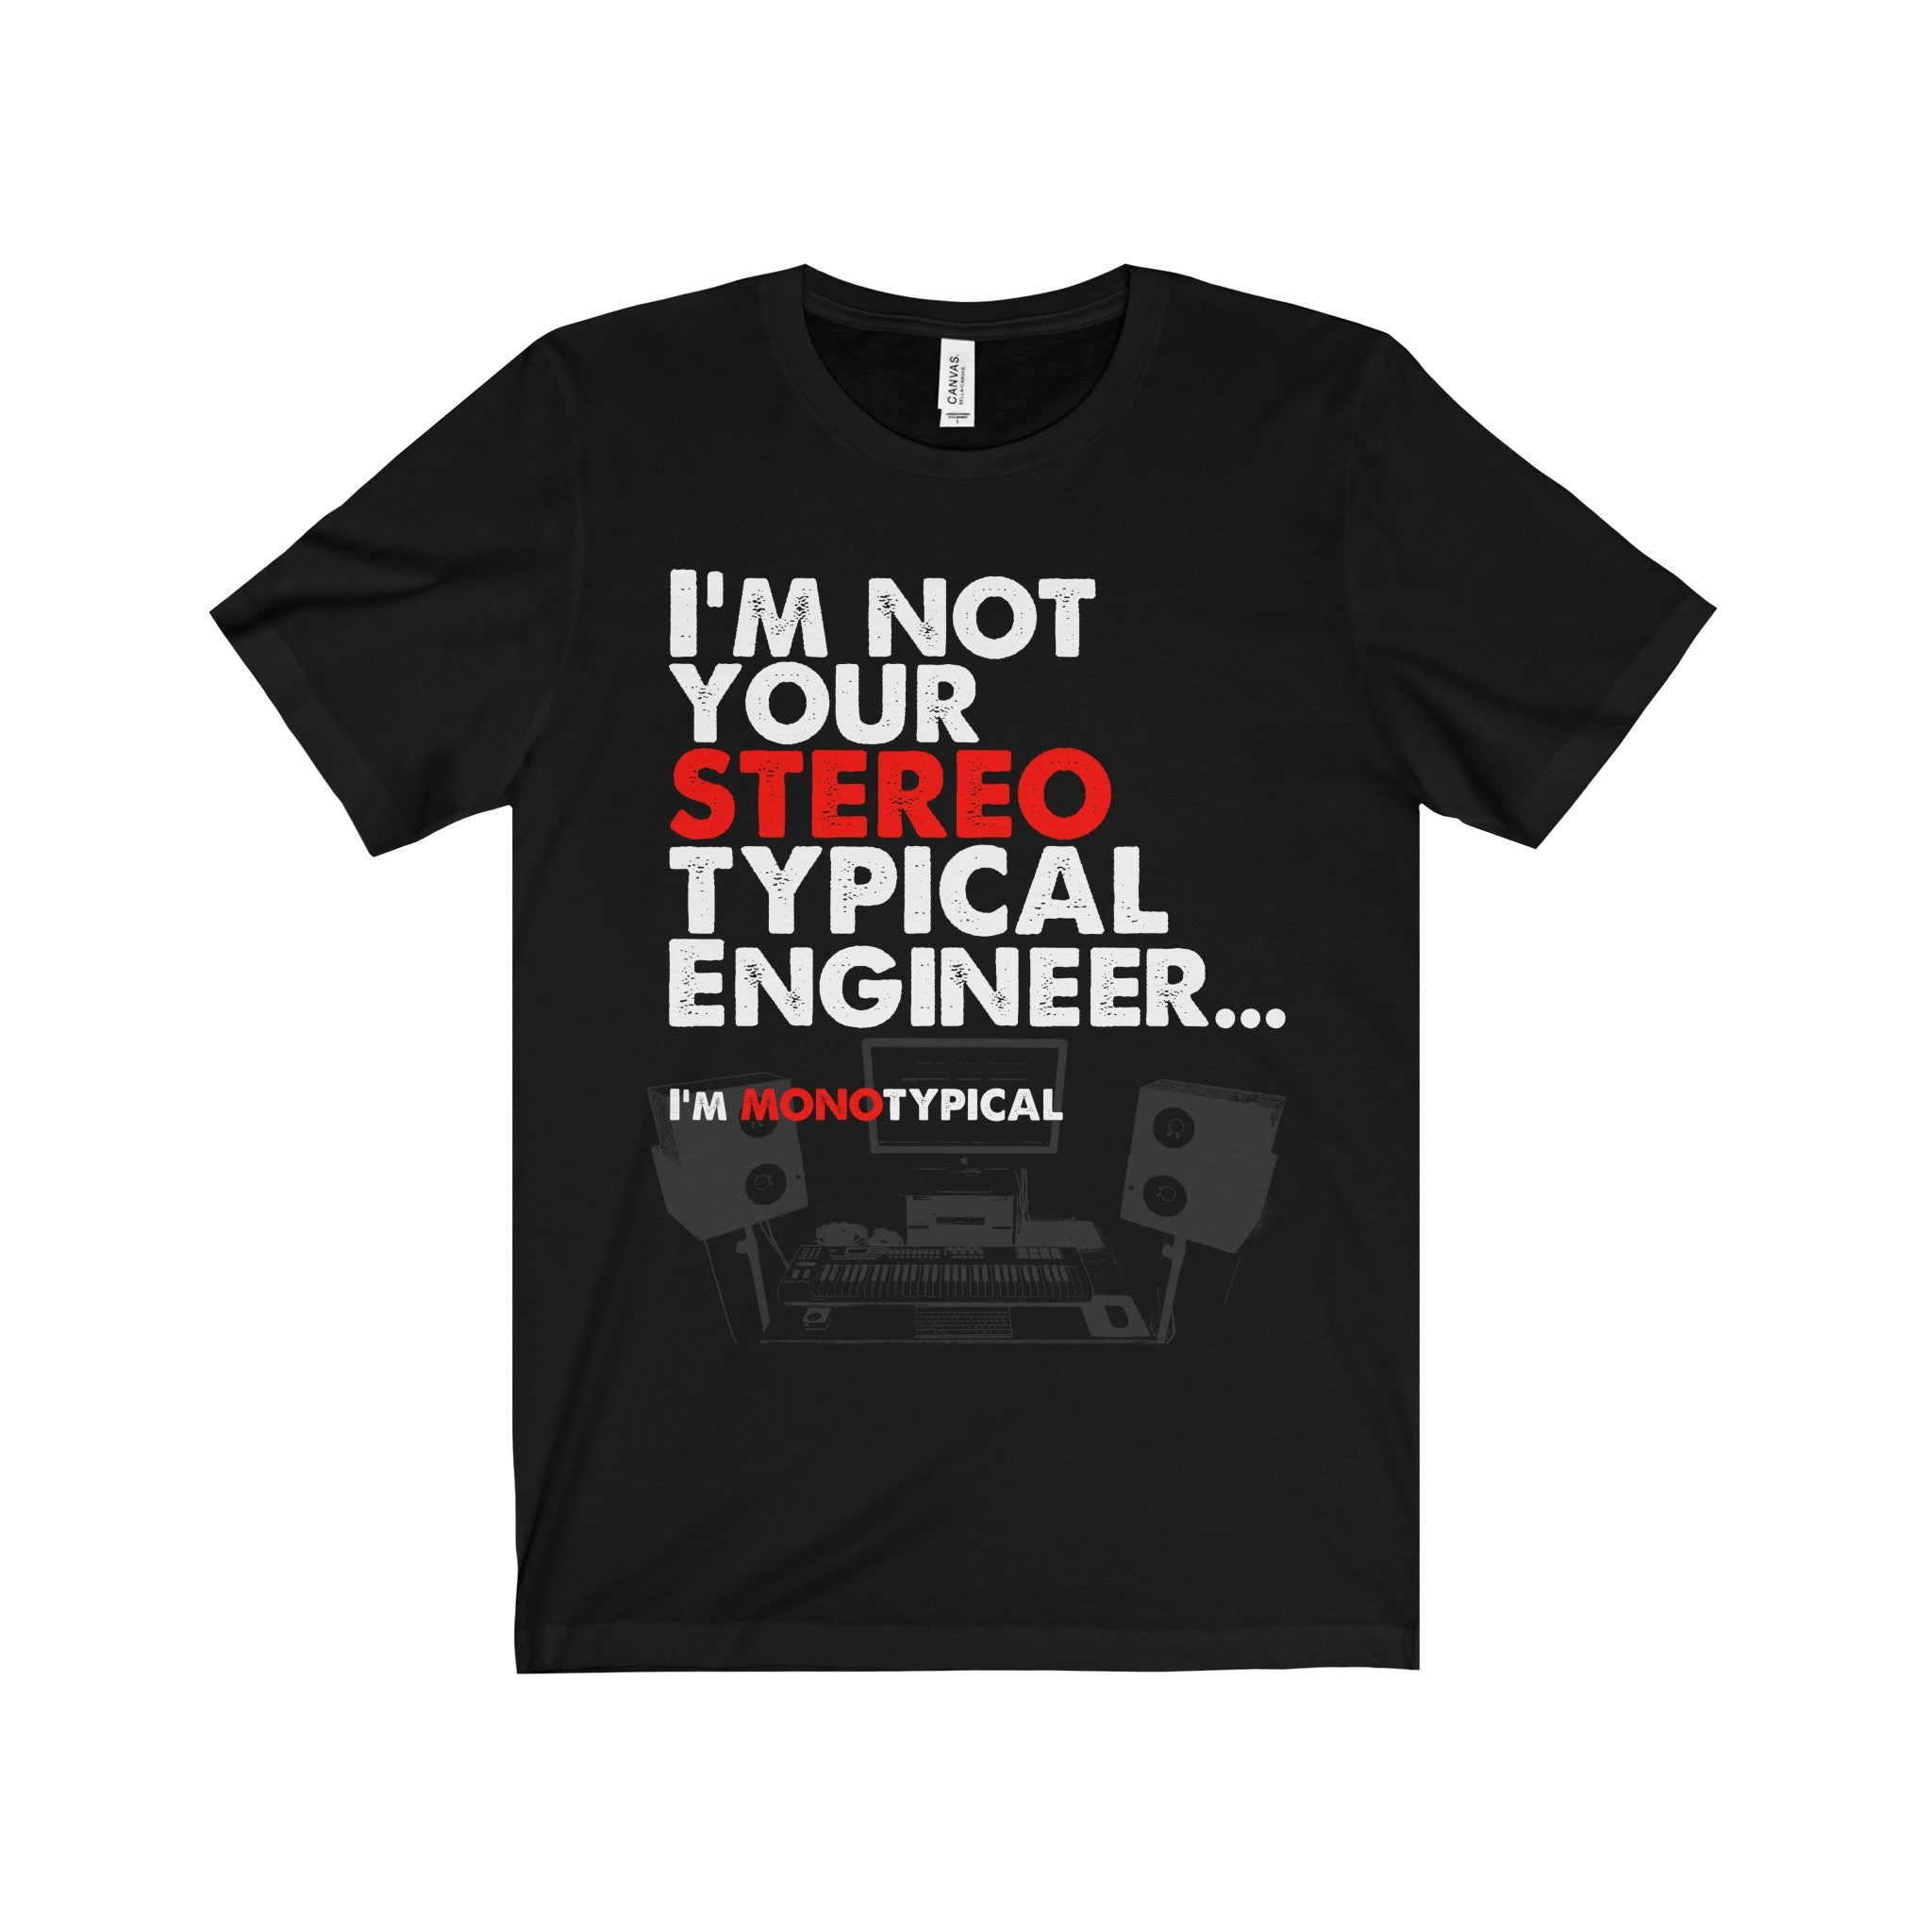 Stereo/Mono Typical Engineer, Short Sleeve T-Shirt